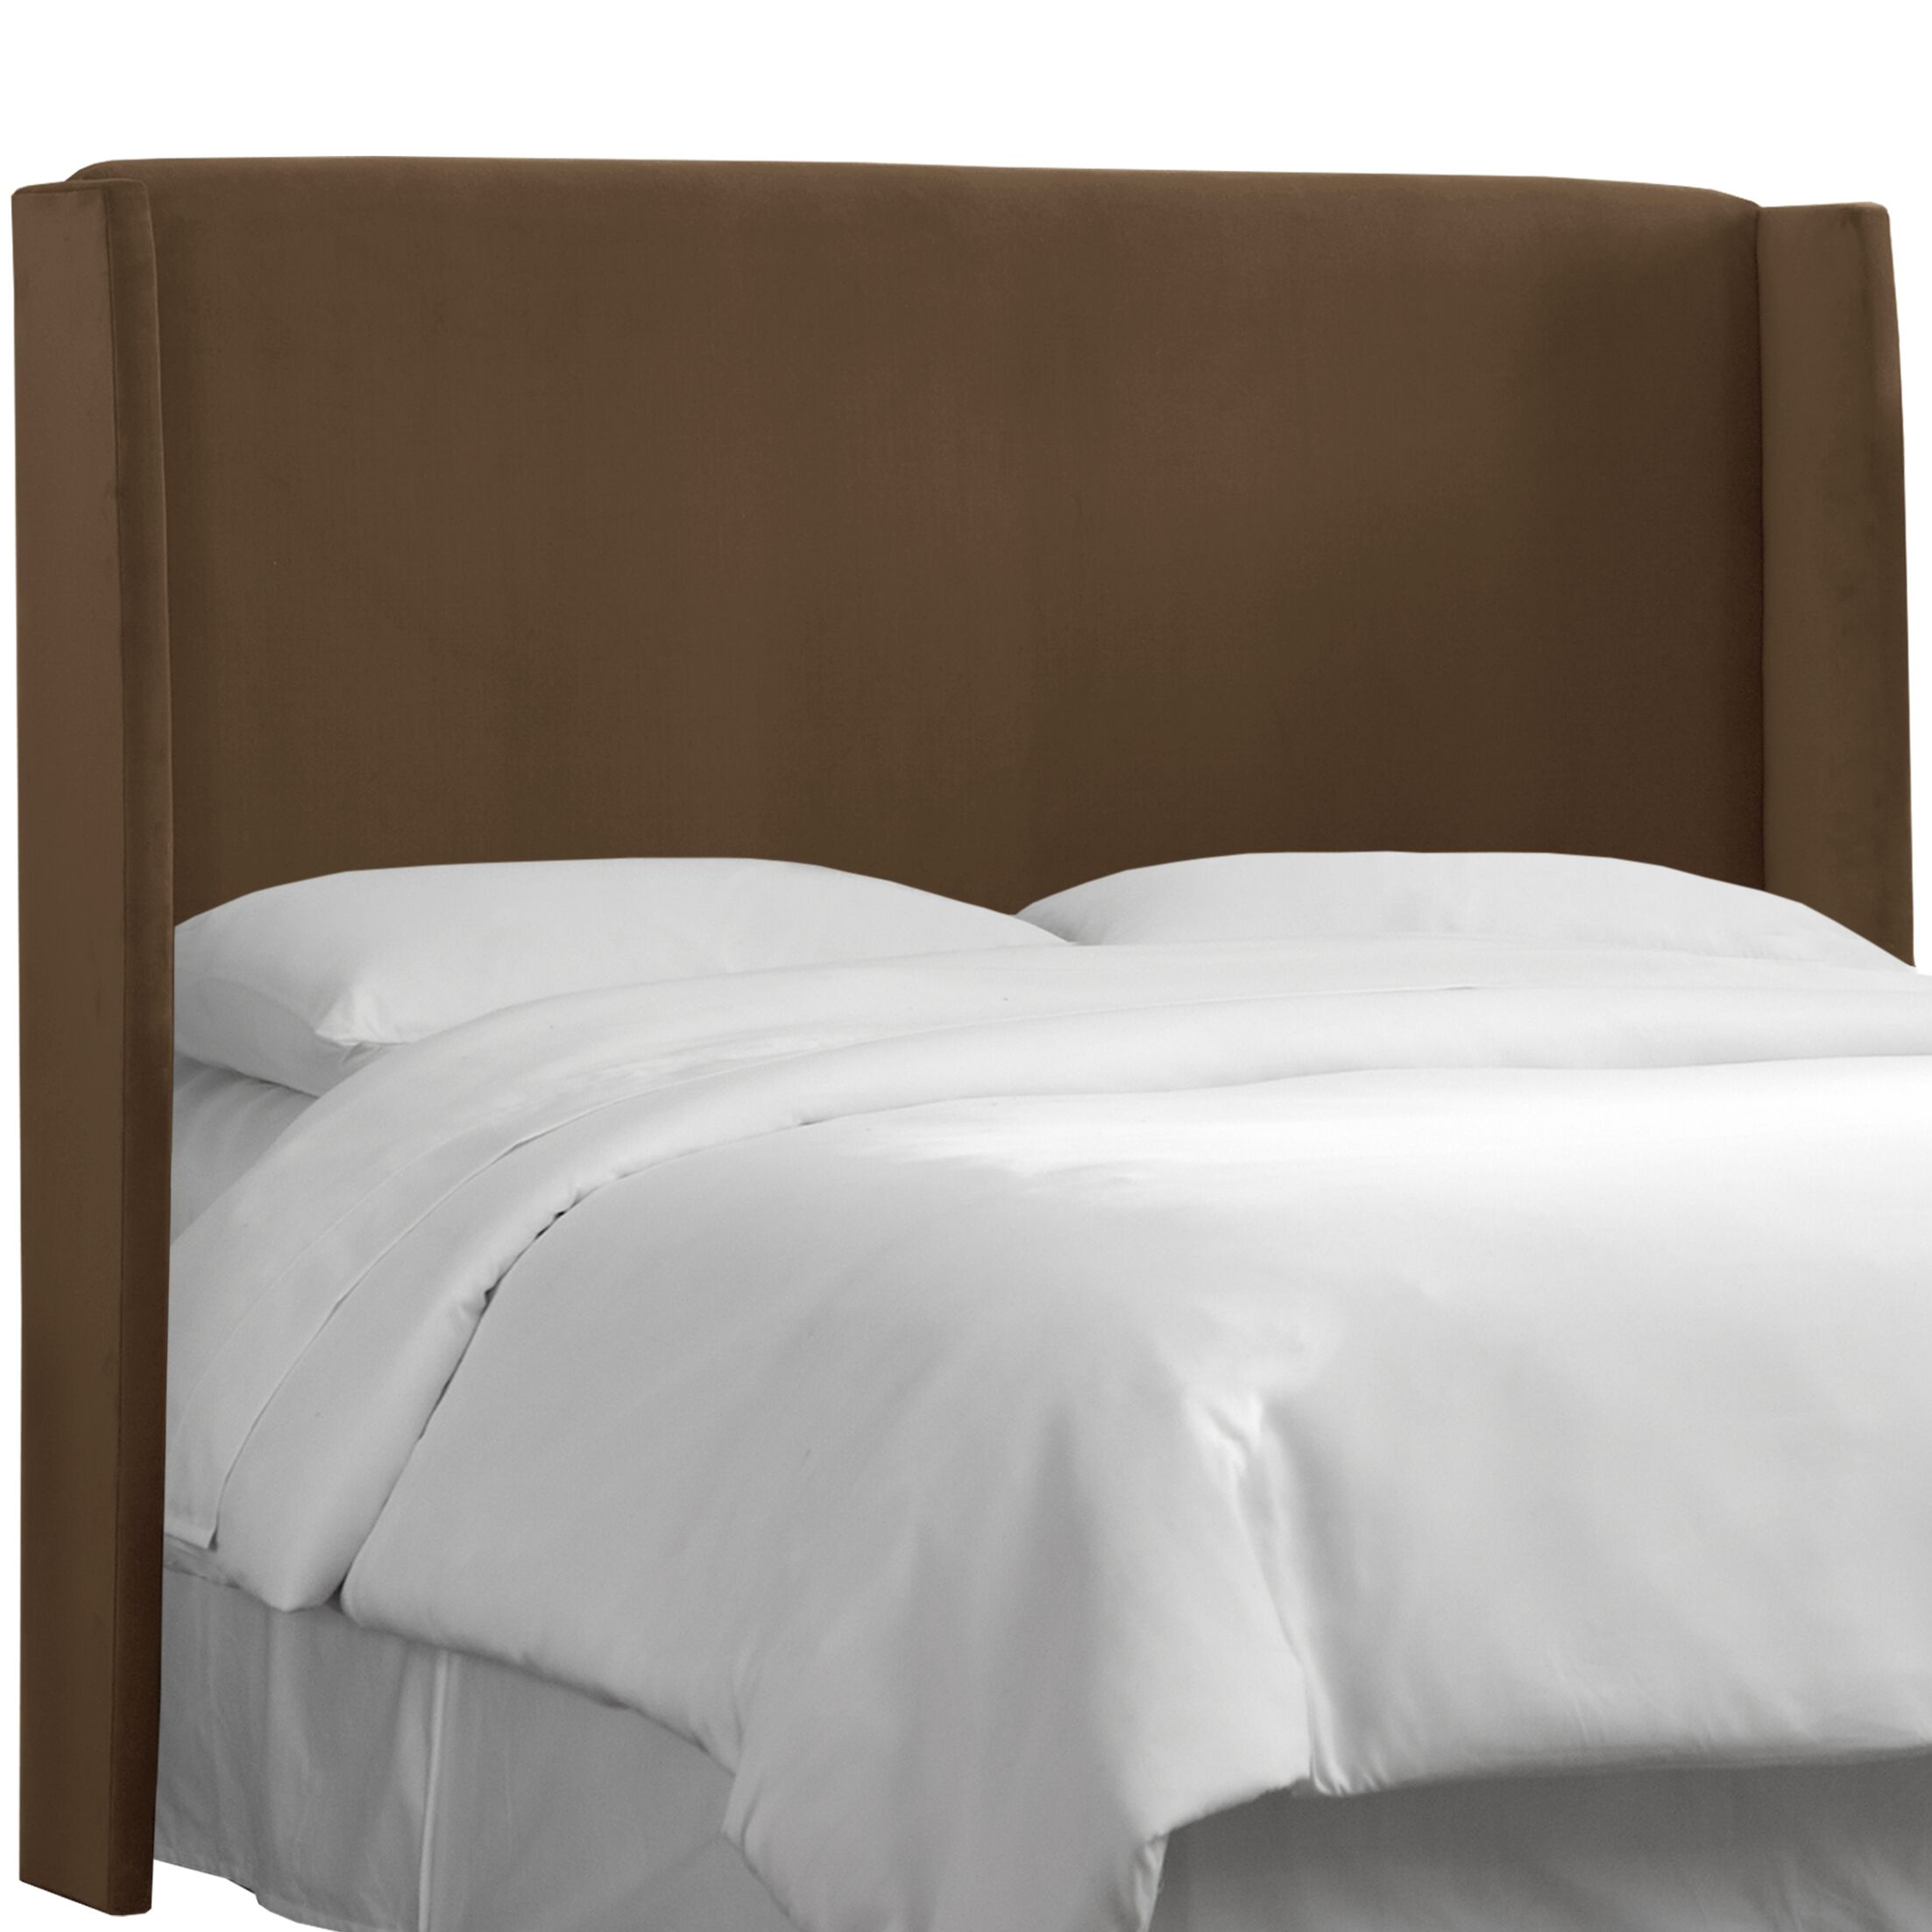 Wingback Upholstered Headboard Size: Queen, Color: Chocolate